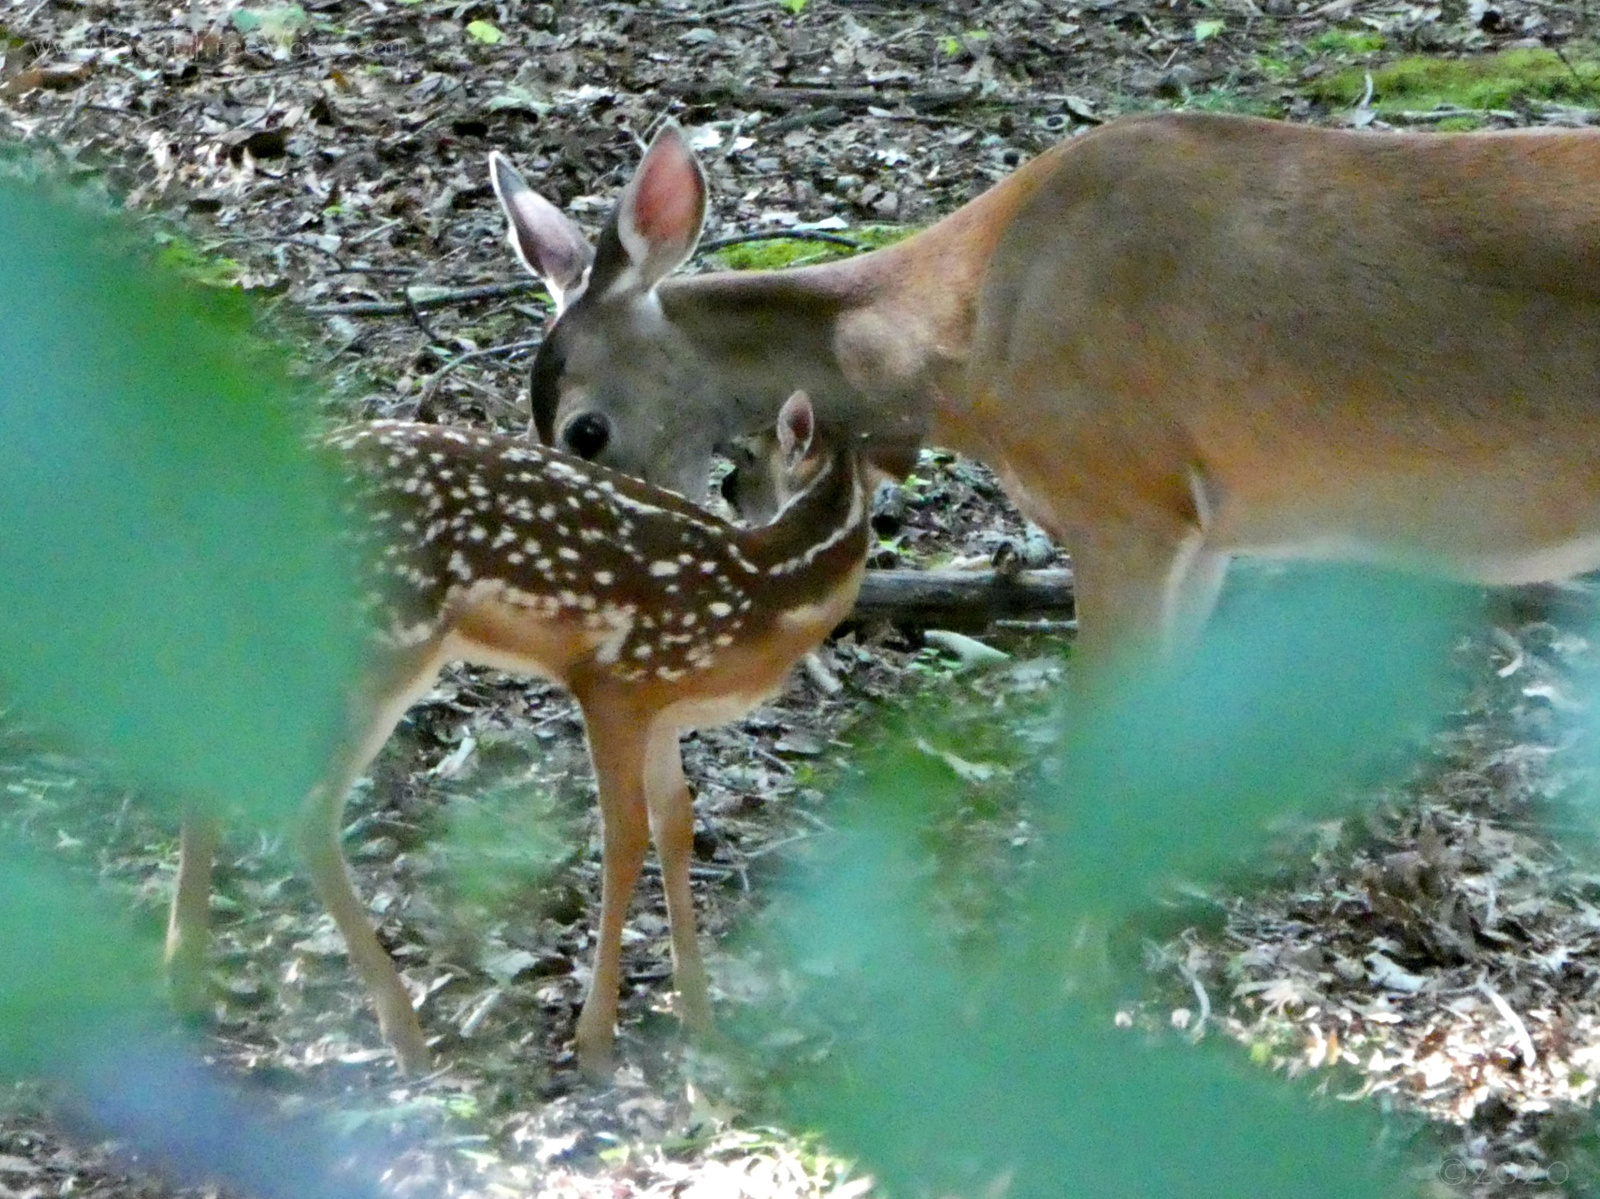 July 14, 2020 - Doe and fawn in Bent Tree